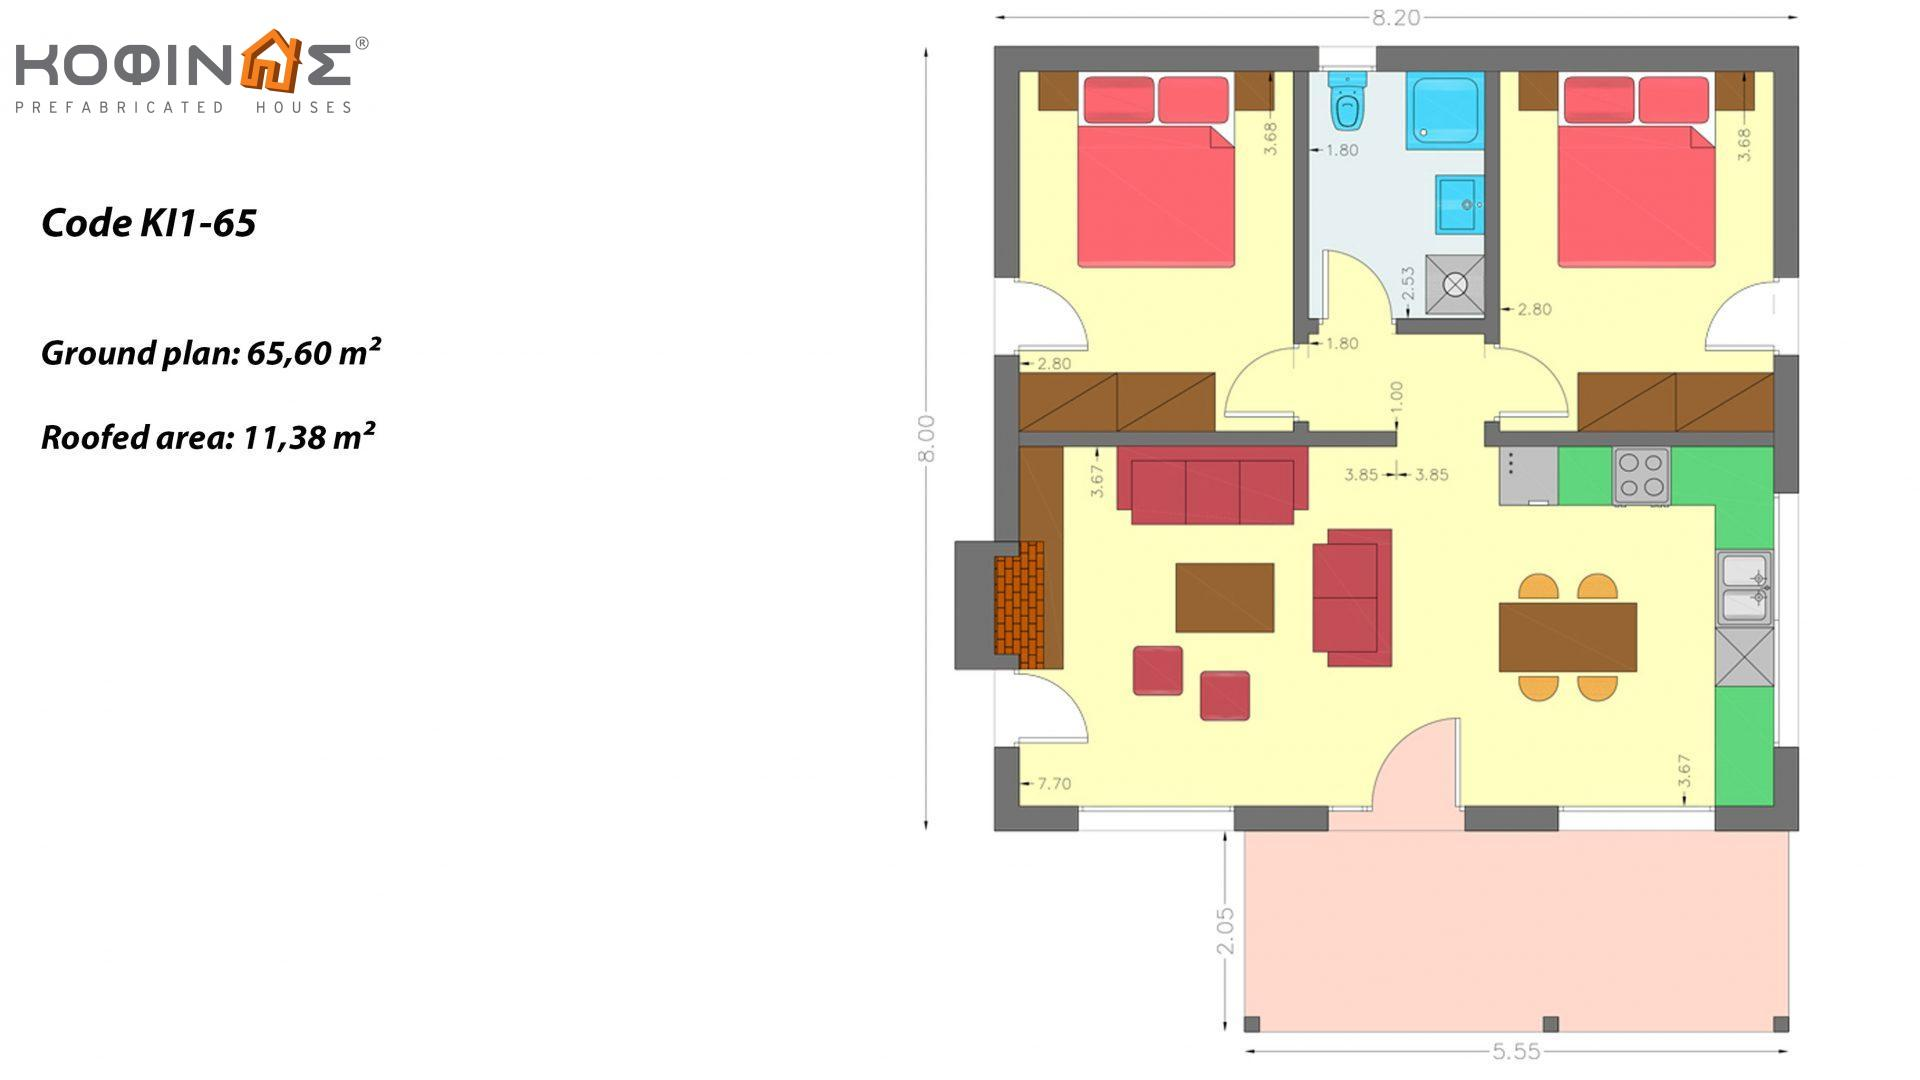 1-story house KI1-65, total surface of 65,60 m², roofed areas 11,38 m²